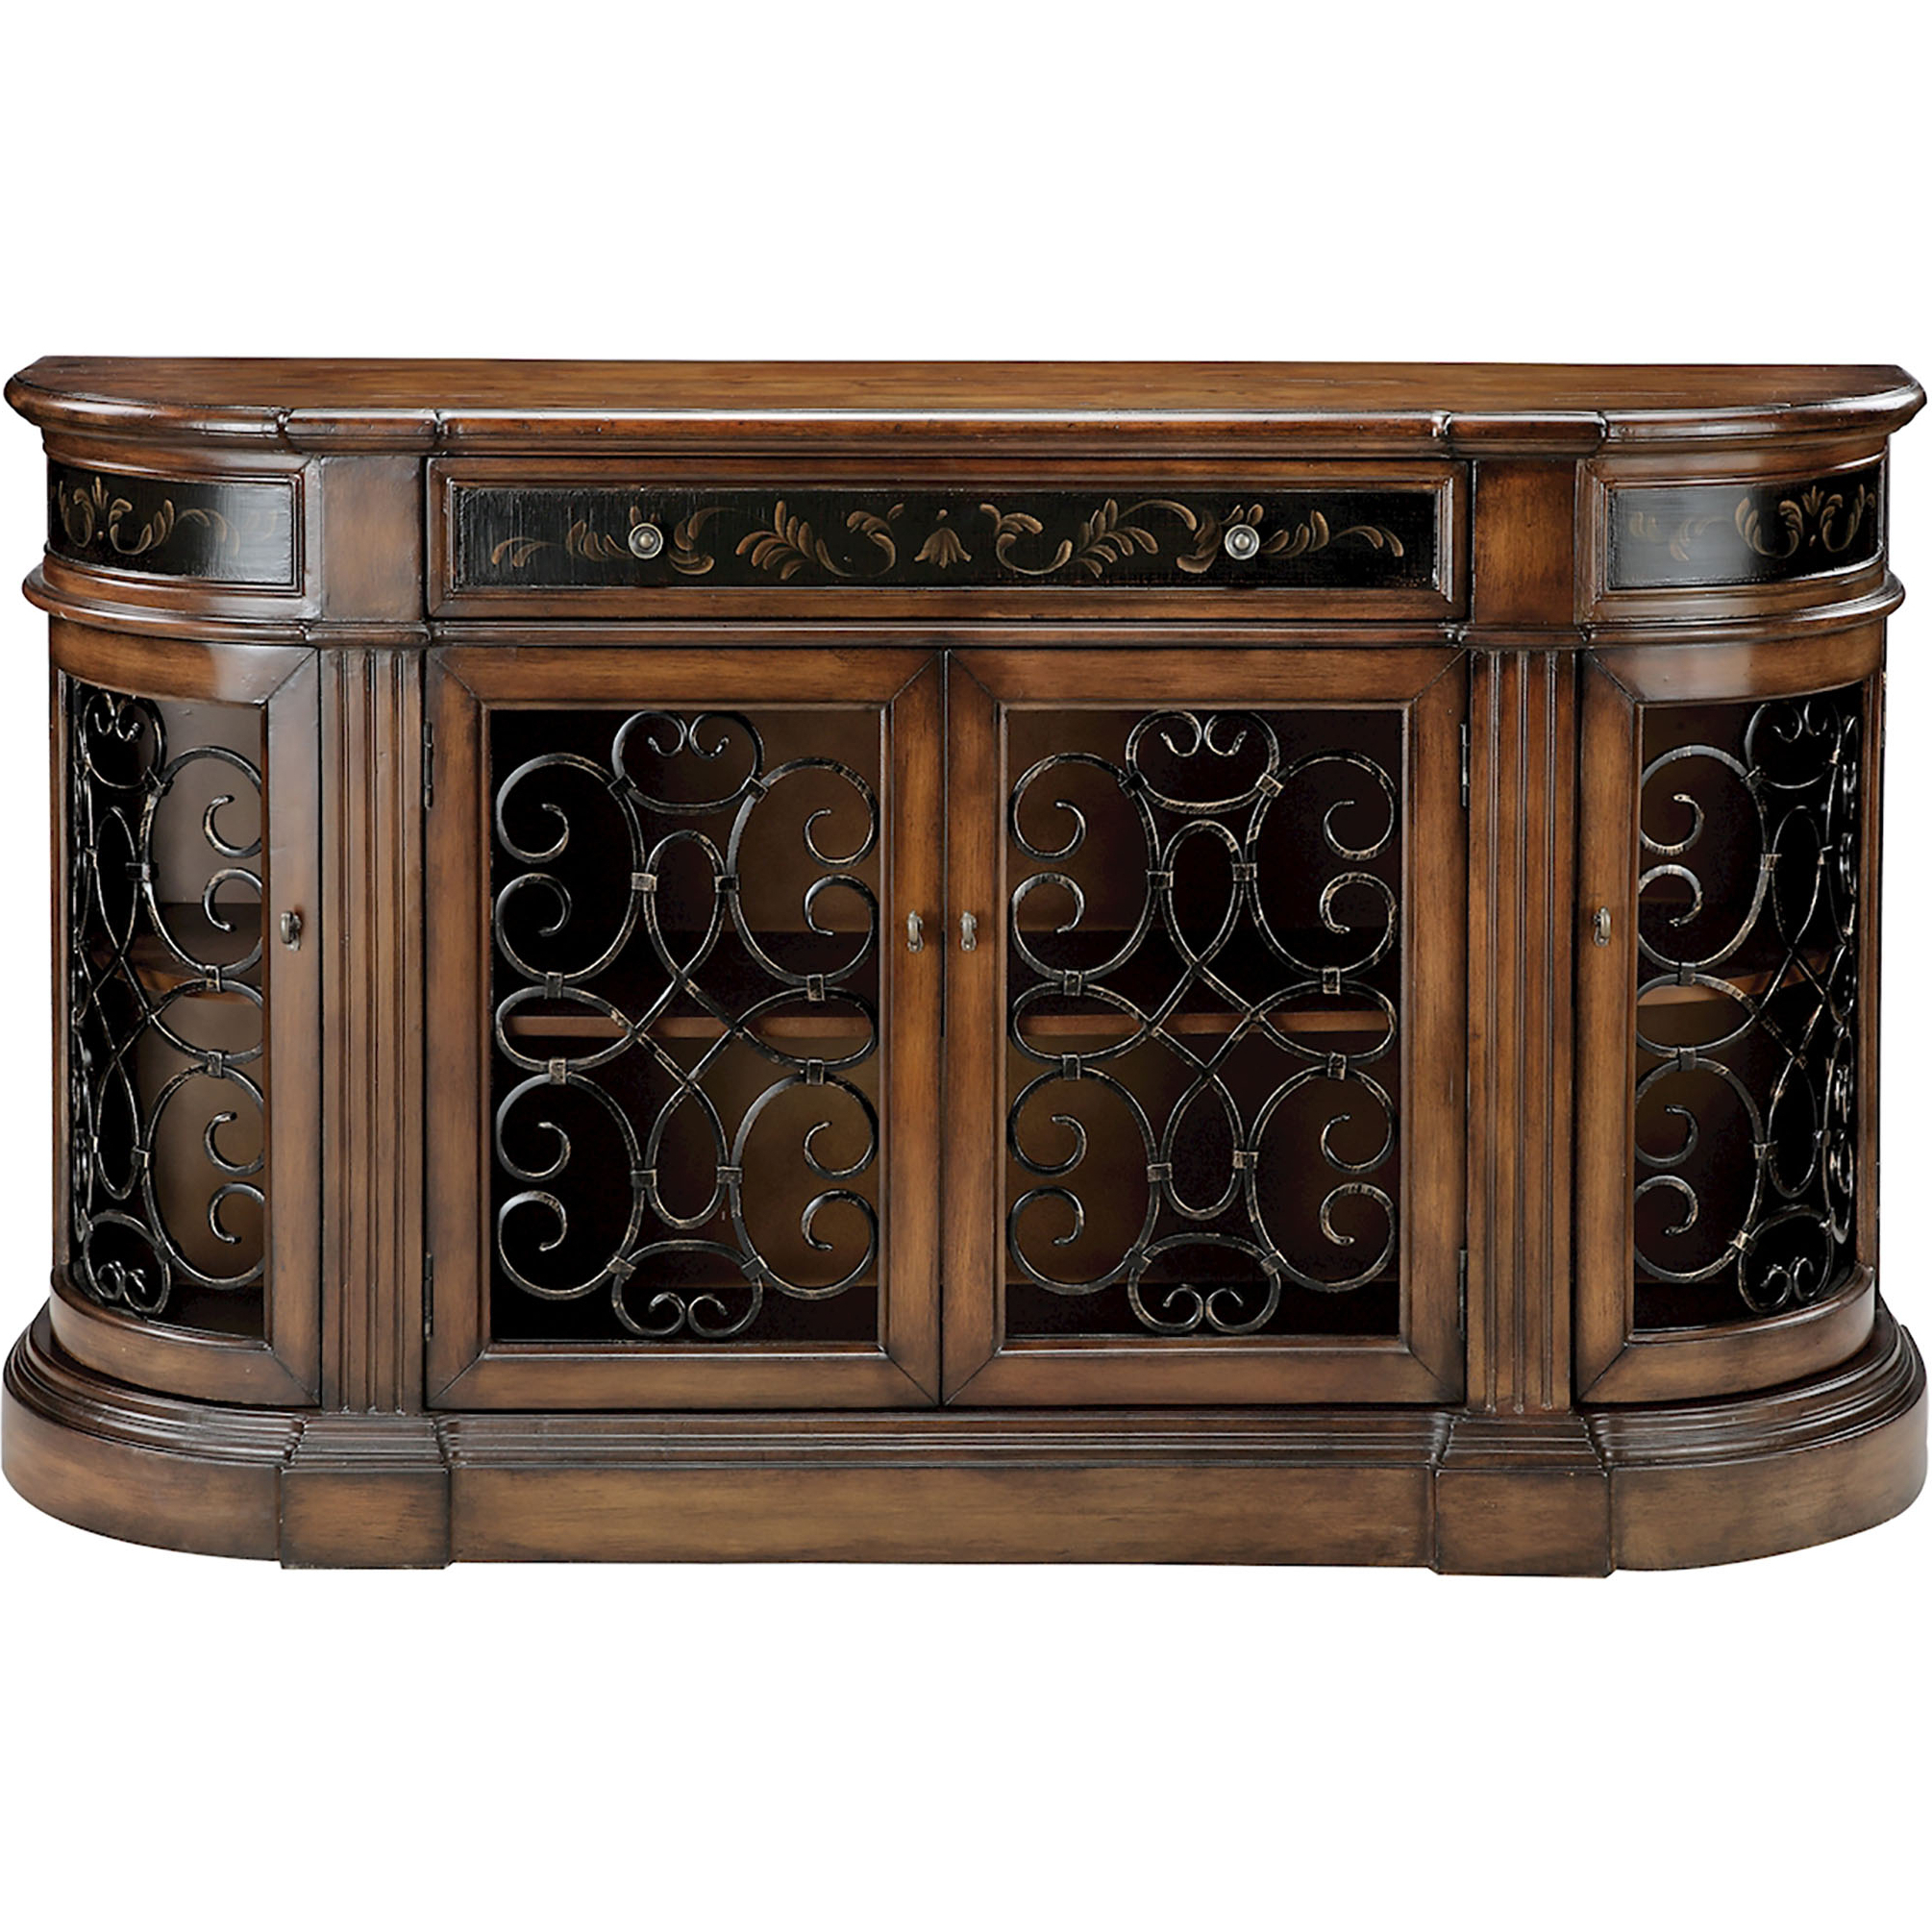 Most Recent Taylor Cabinet In Distressed Wood W/ Iron Scrollwork With Regard To Kronburgh Sideboards (View 12 of 20)